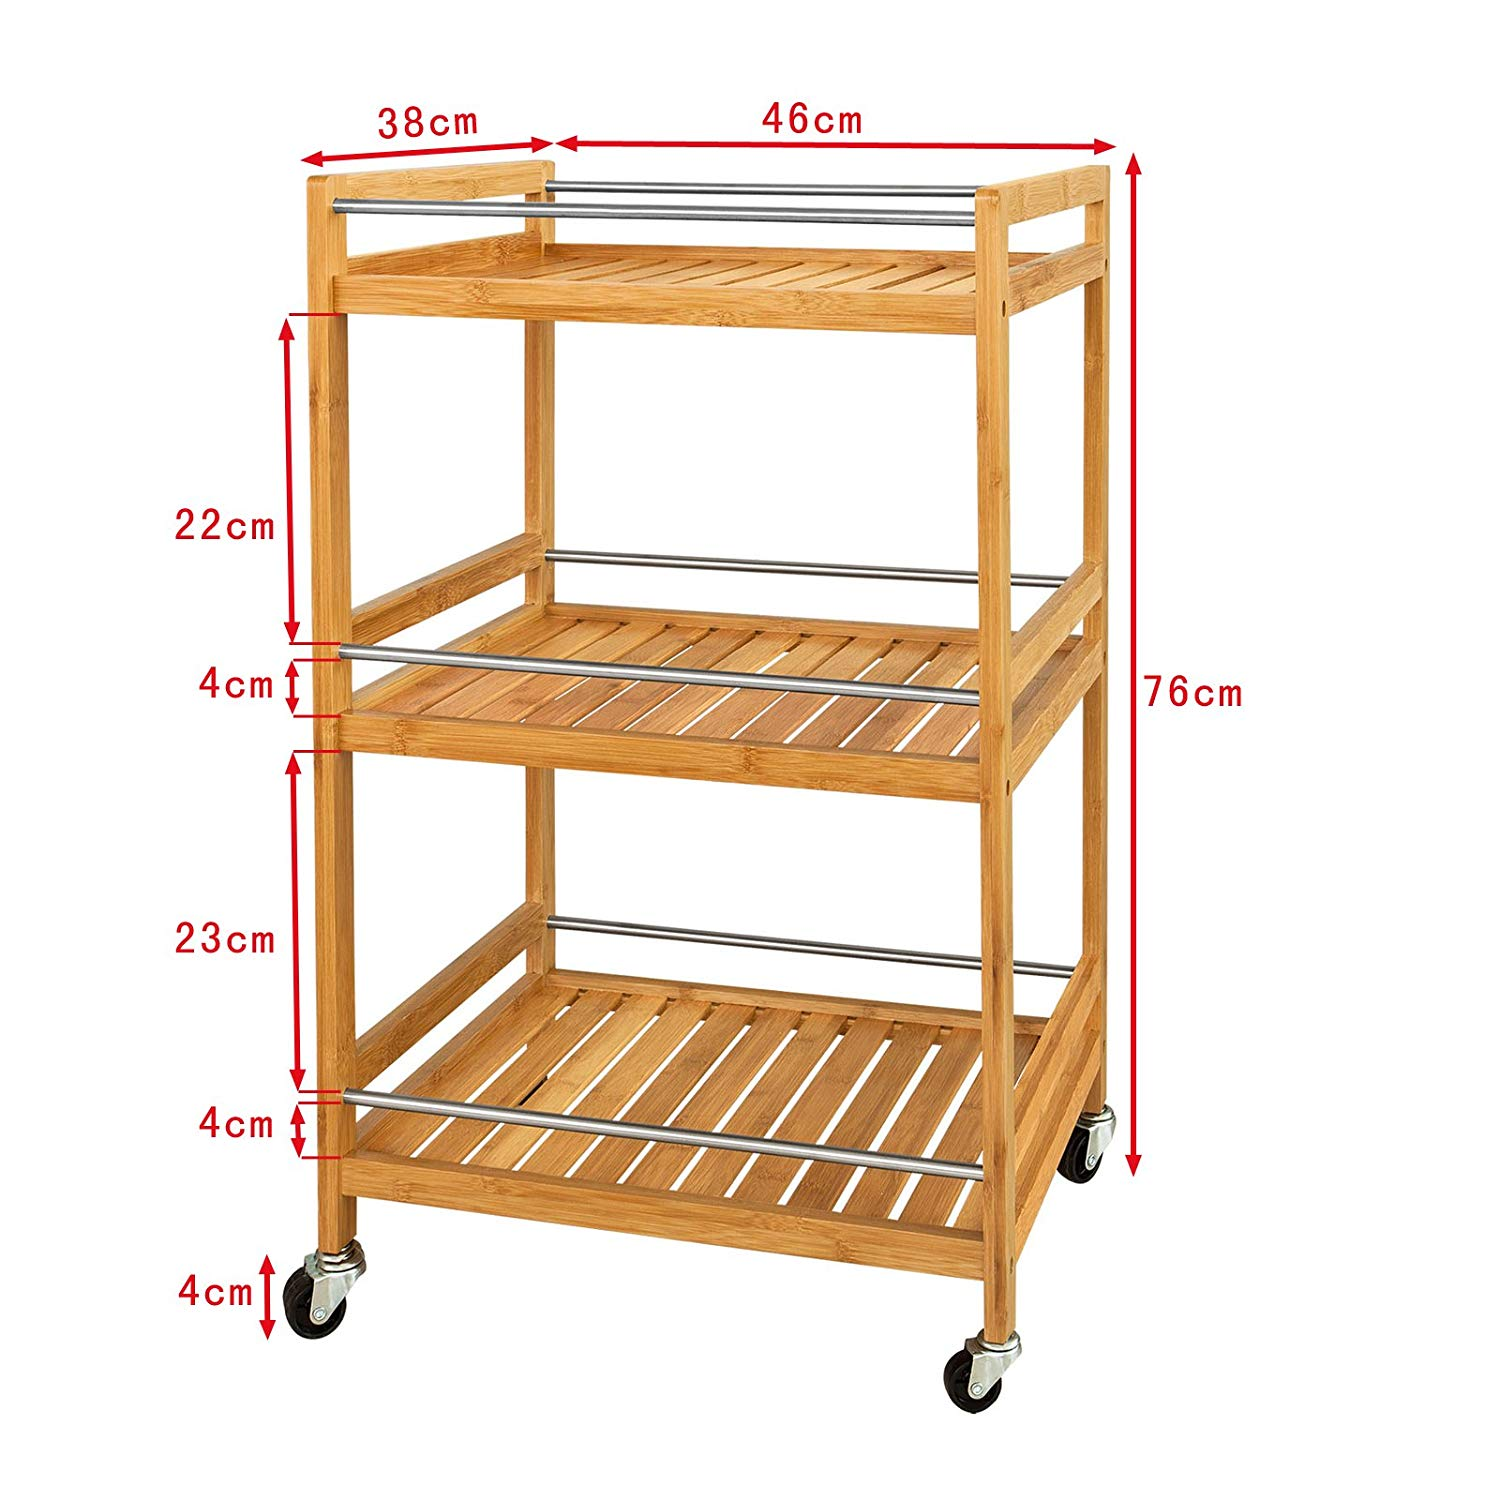 Kitchen Serving Trolley  Cupboard with Caster Kitchen Storage Serving Cart  L46xW38xH76cm Bamboo